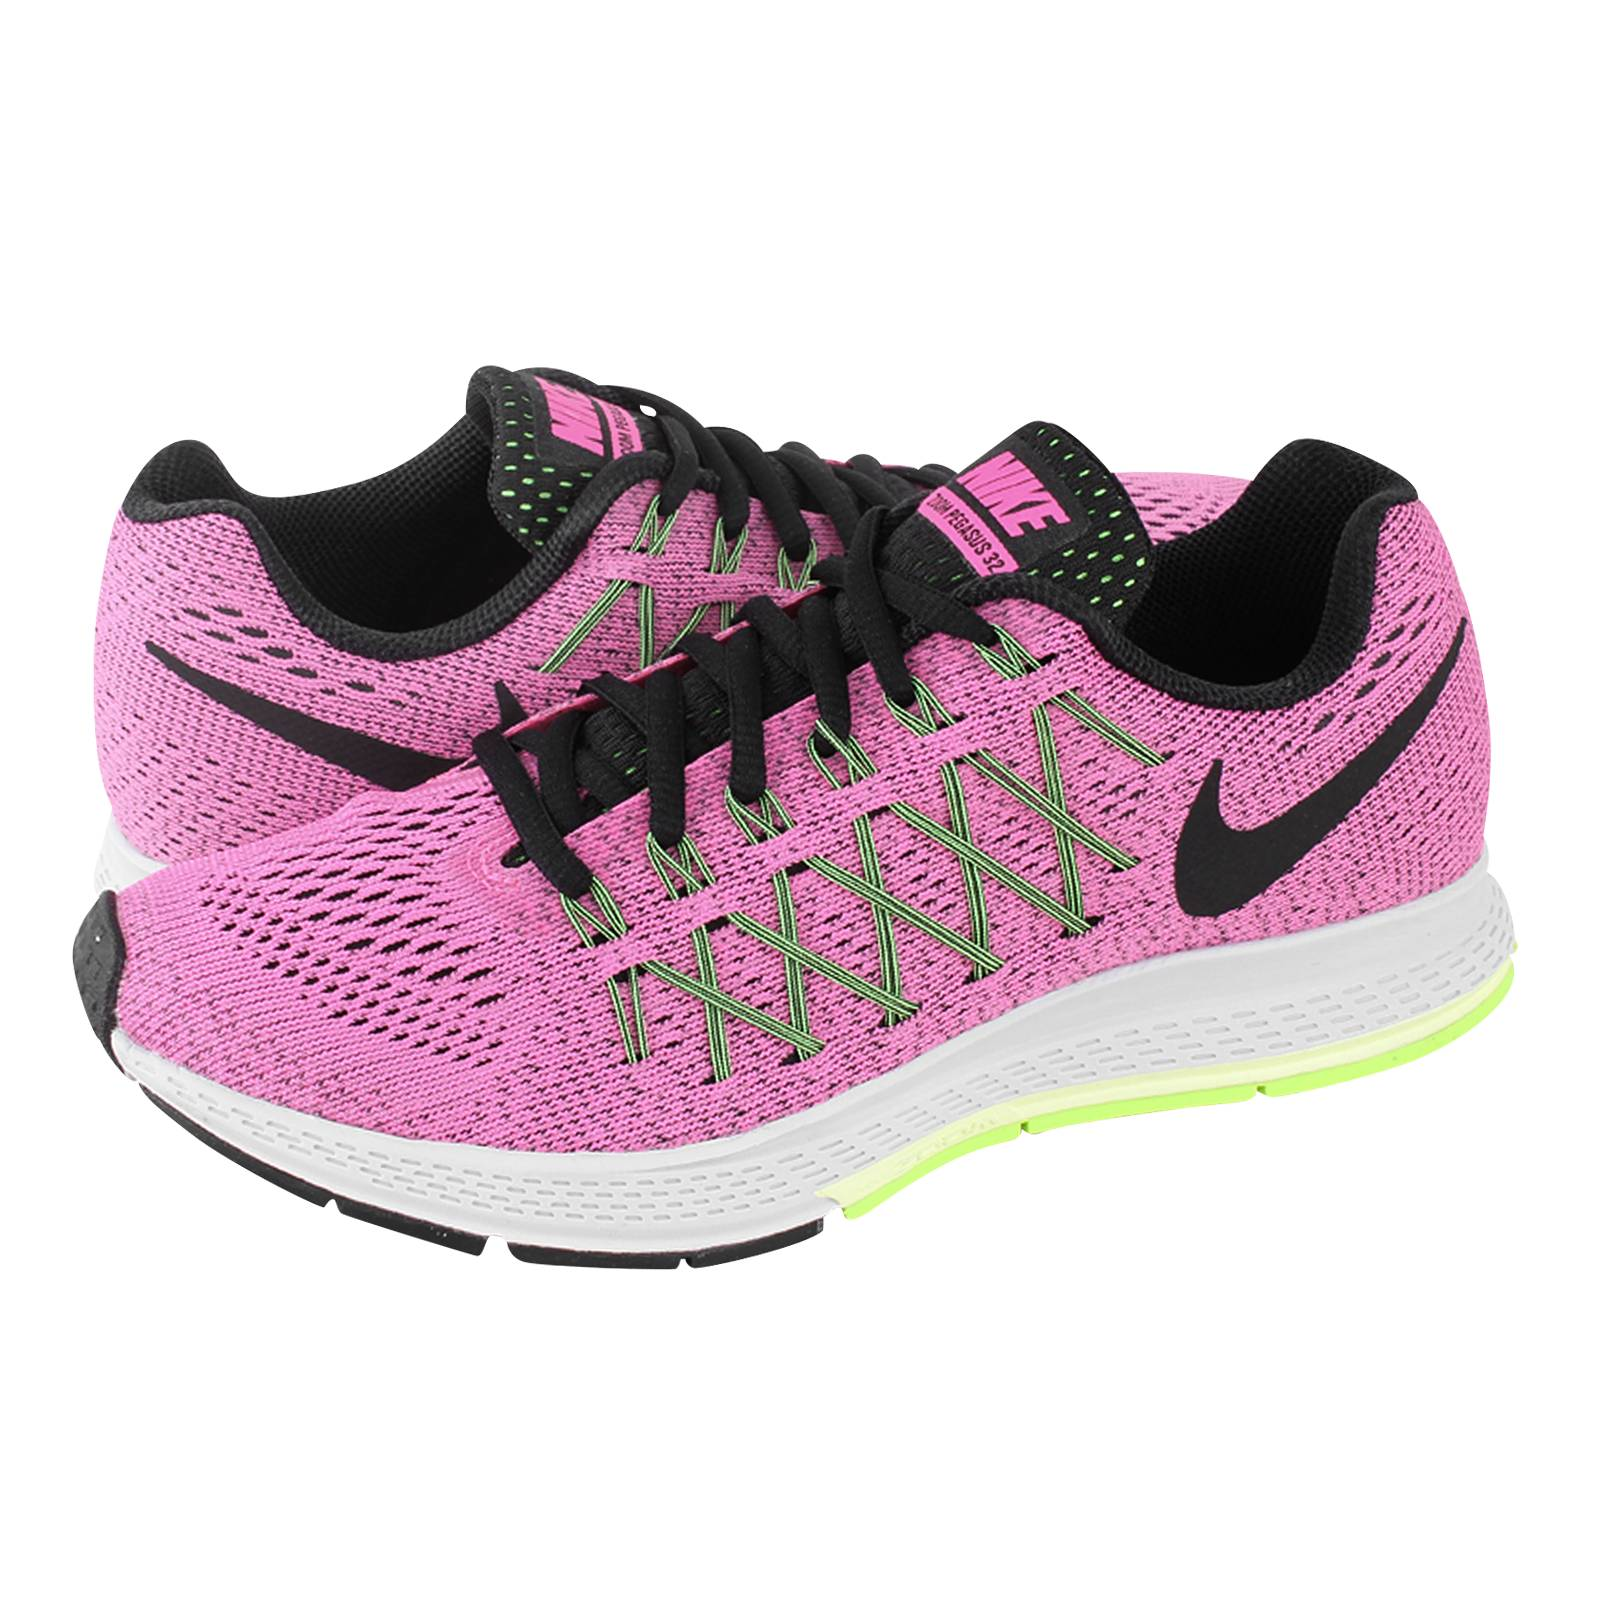 sélection premium fd66e 2906e Nike Air Zoom Pegasus 32 athletic shoes